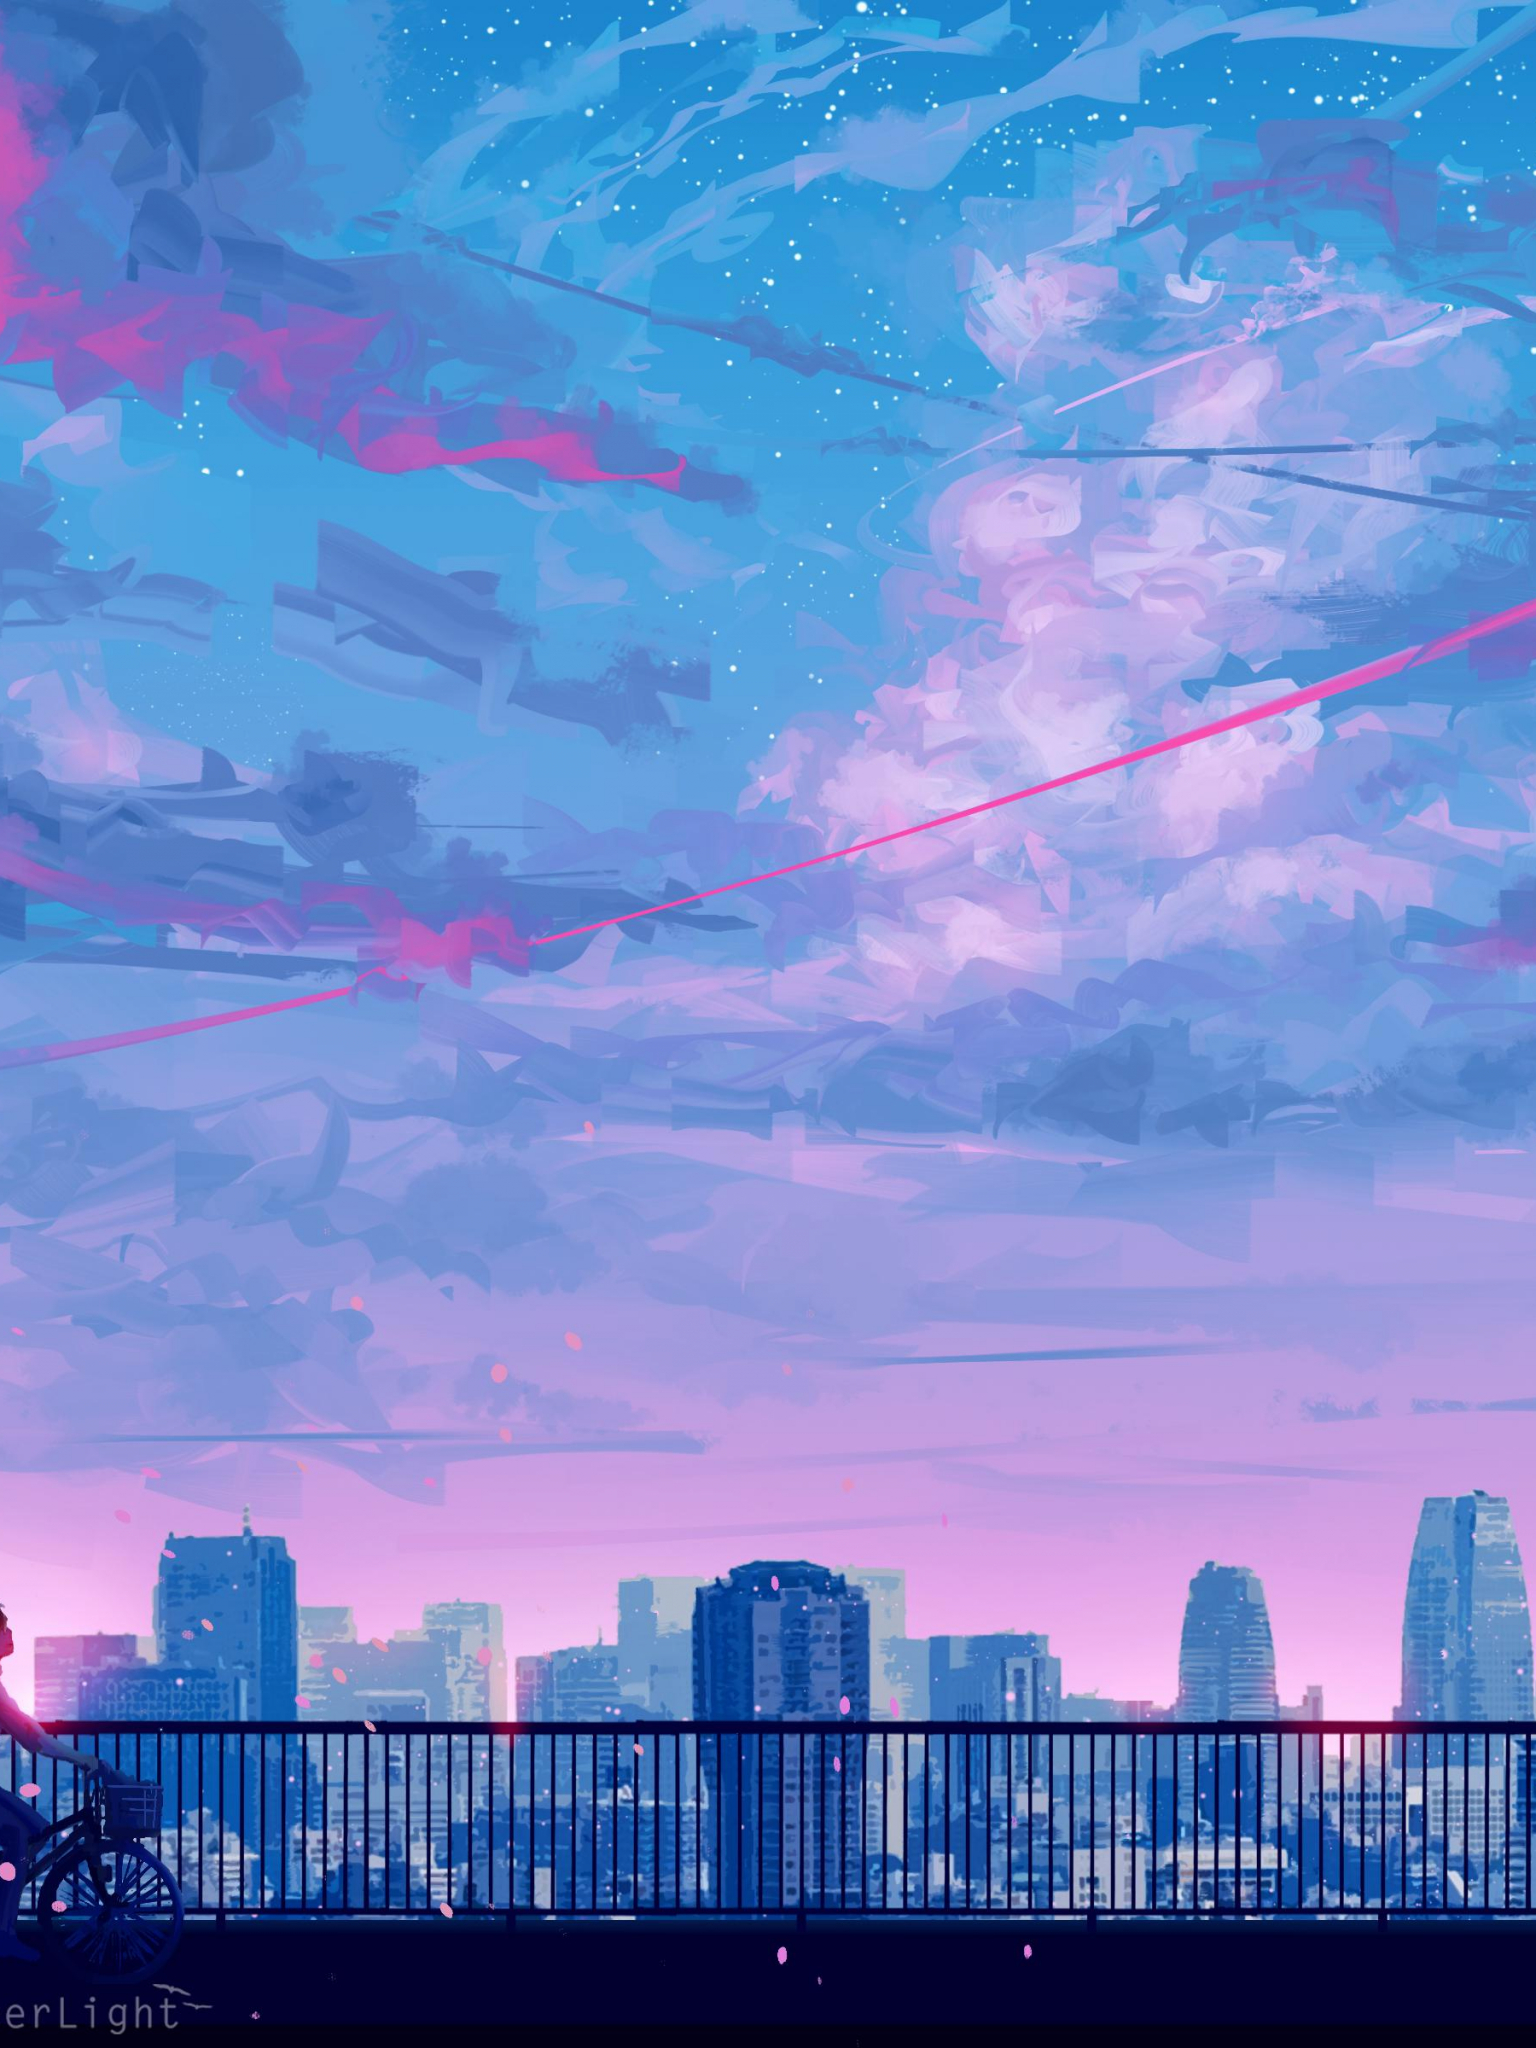 Free Download Anime 4k Wallpapers For Your Desktop Or Mobile